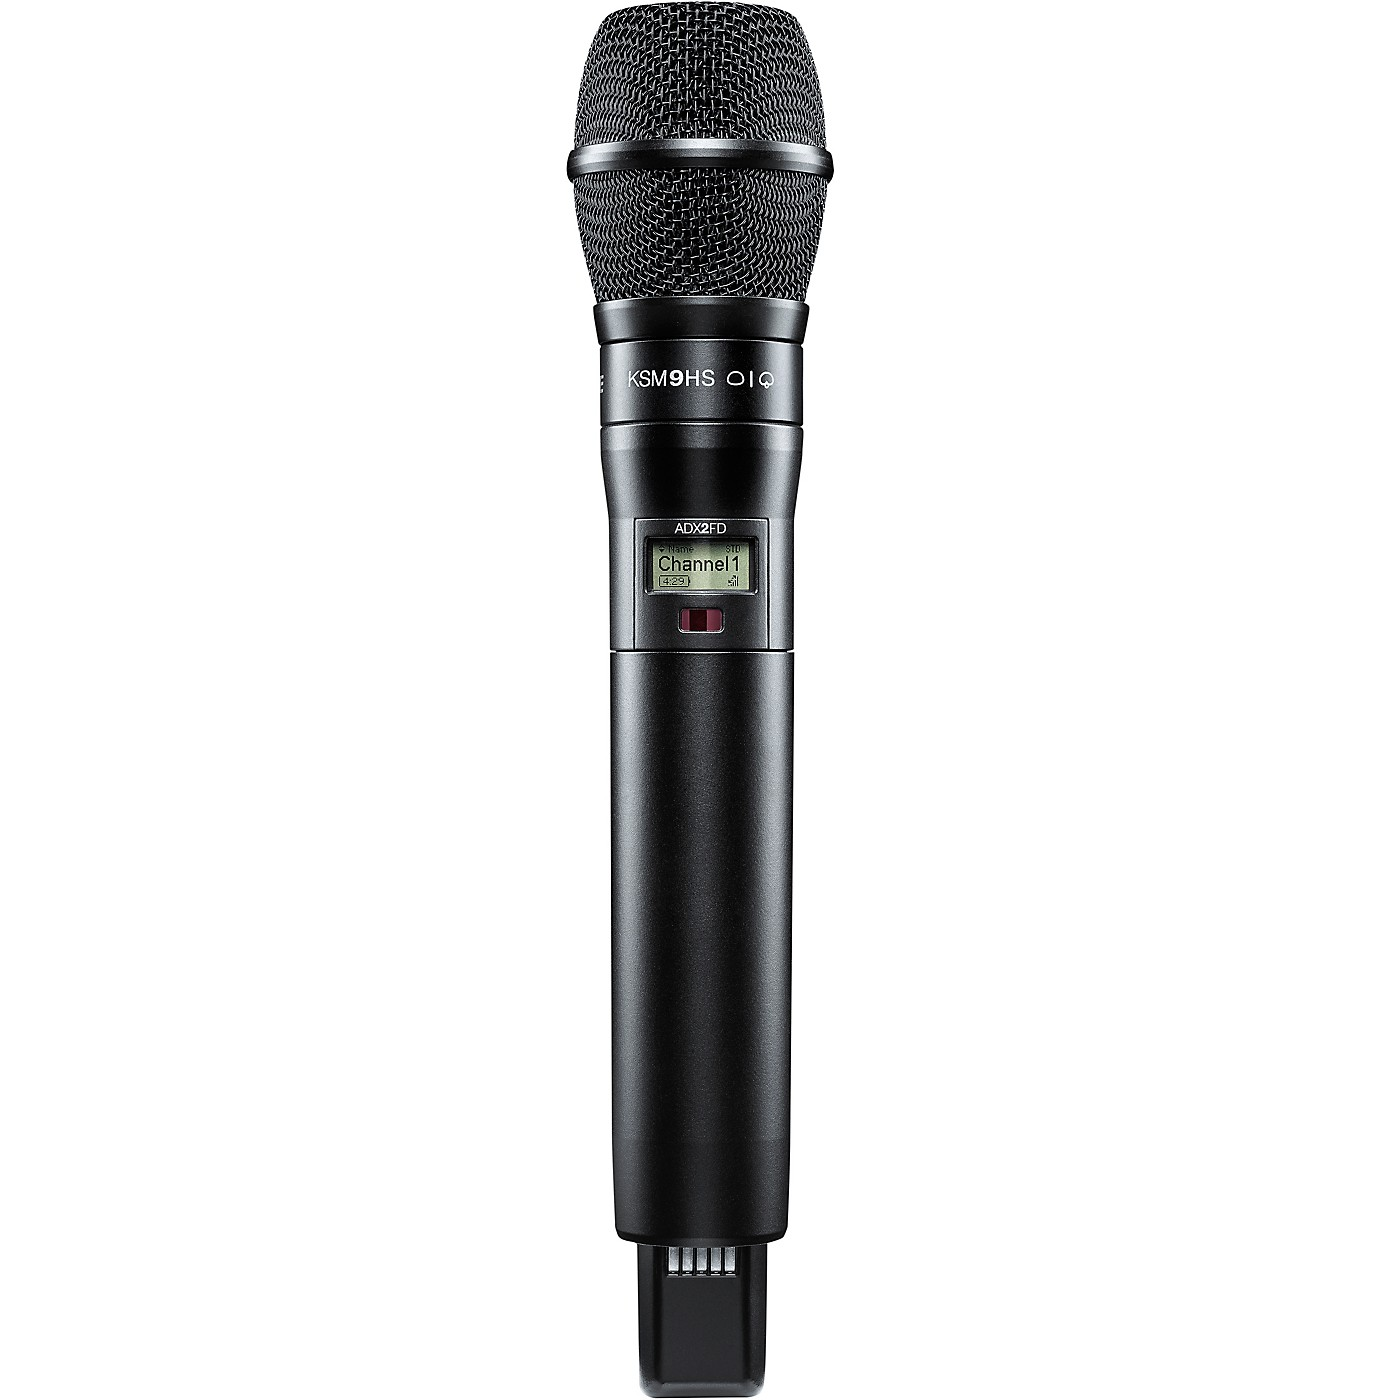 Shure Axient Digital ADX2FD/K9HSB Wireless Handheld Microphone Transmitter With KSM9HS Capsule in Black thumbnail